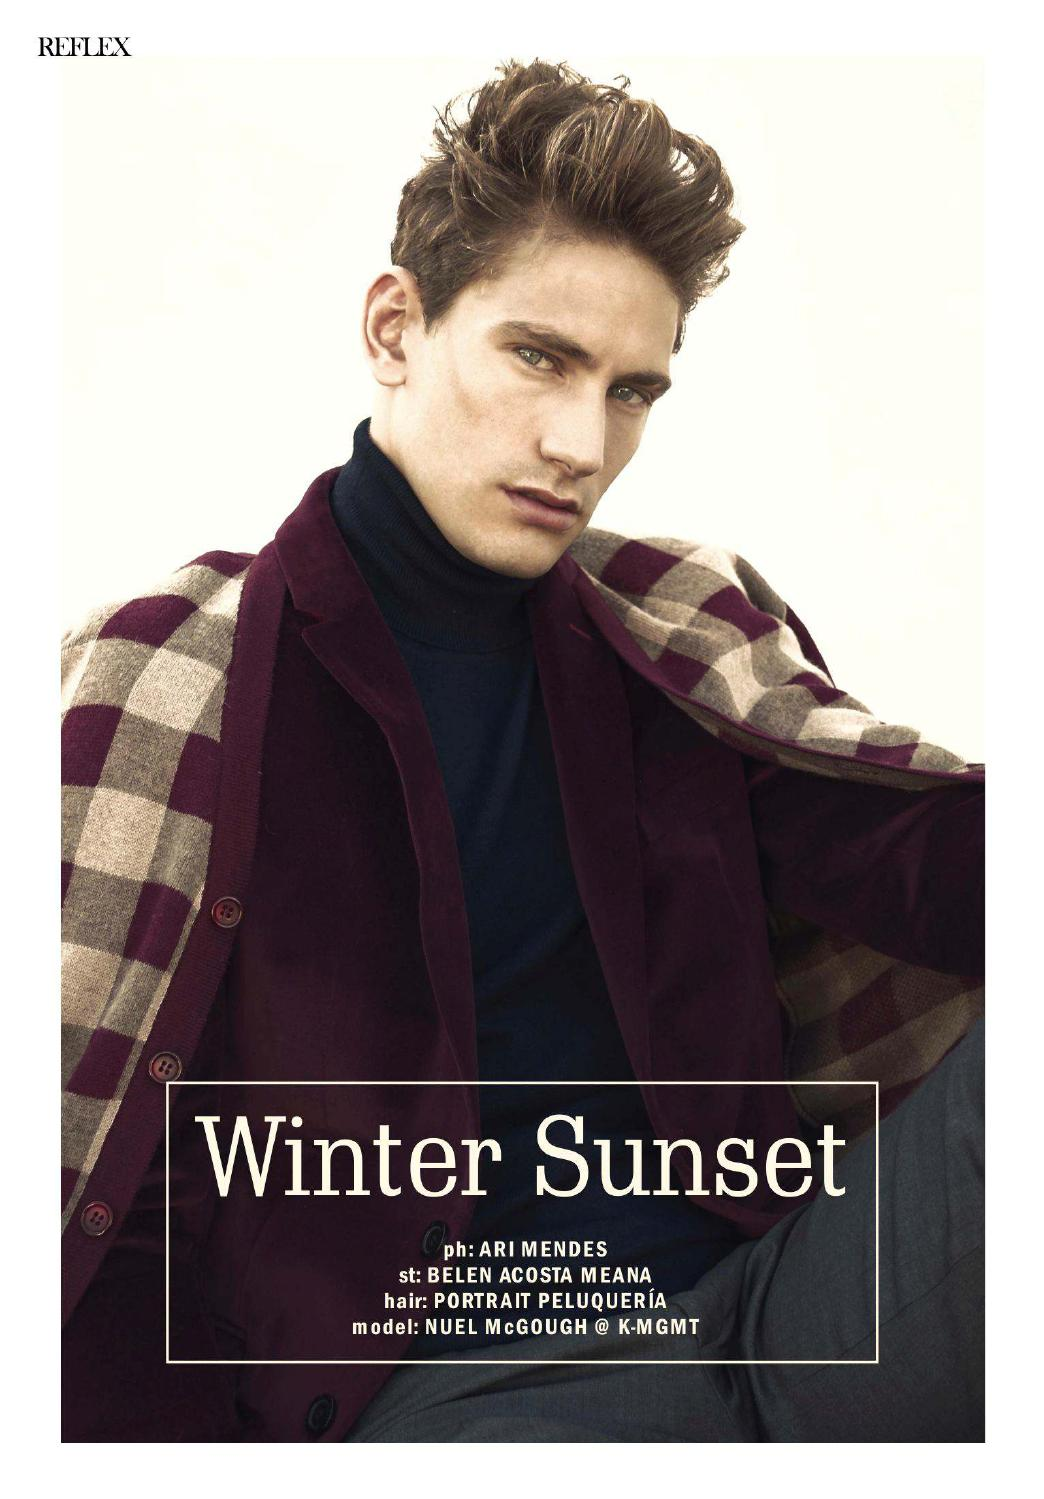 Reflex Homme March/April 2015 Winter Sunset Photographer: Ari Mendes. Stylist: Belén Acosta Meana. Hair: Peluquería Portrait.